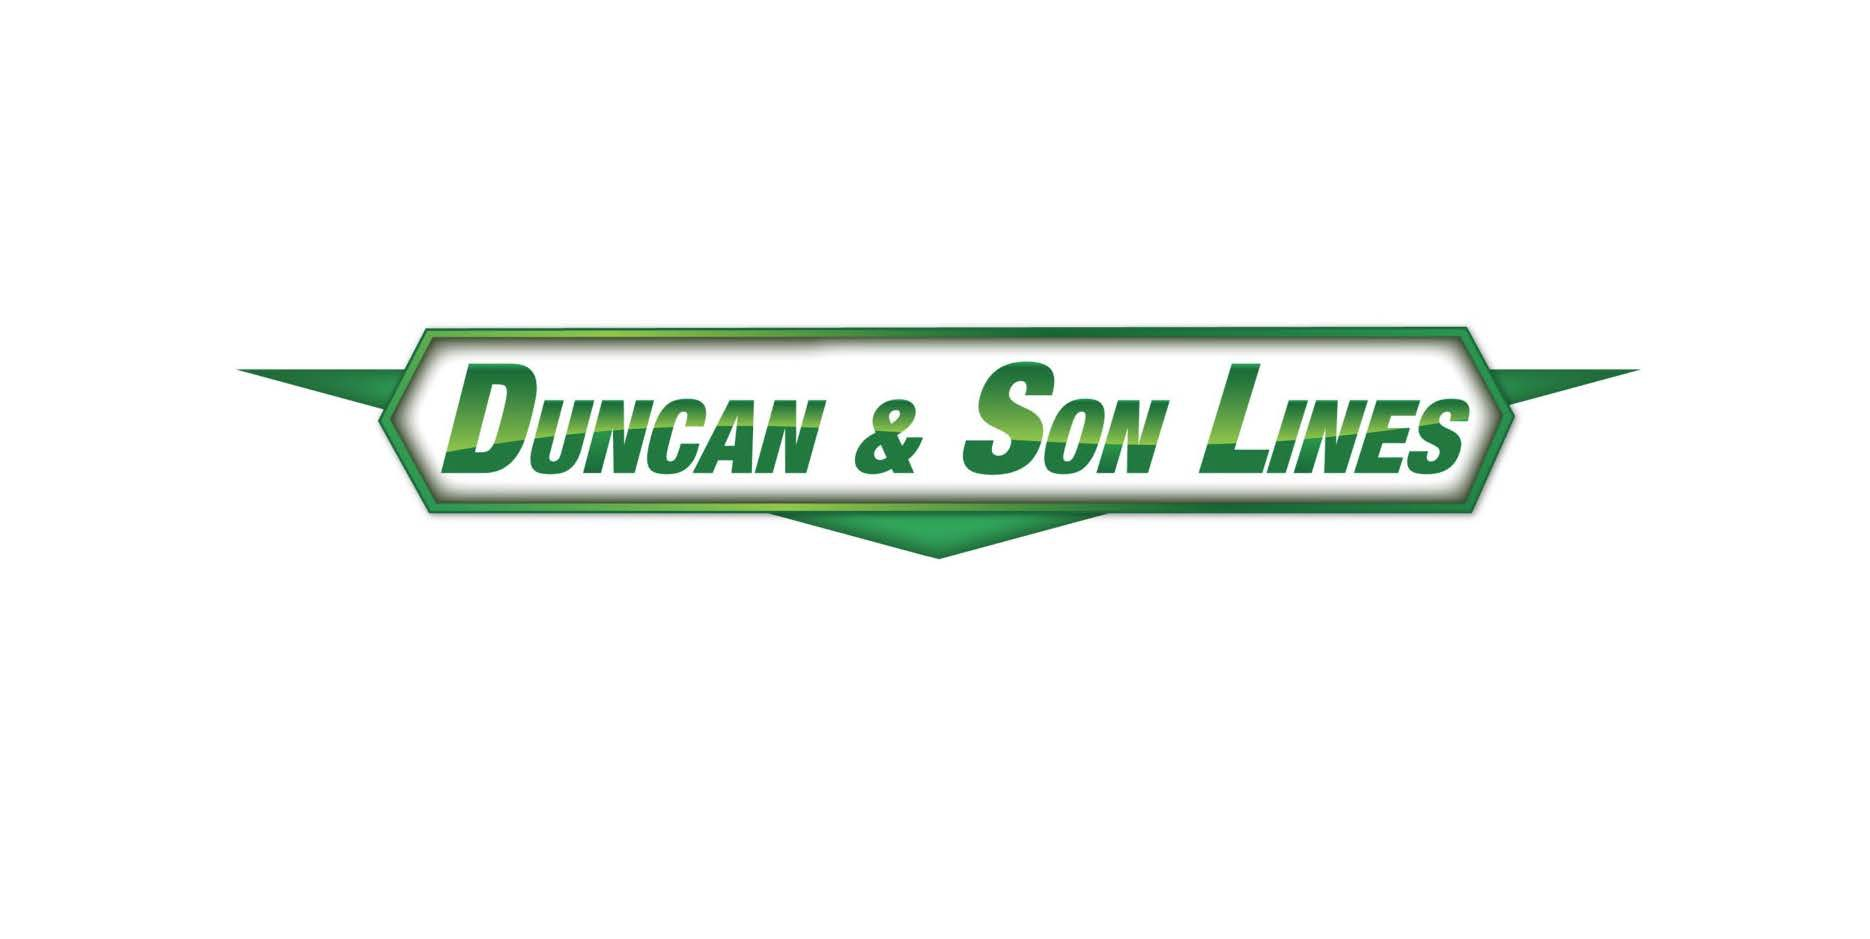 Duncan & Sons Lines